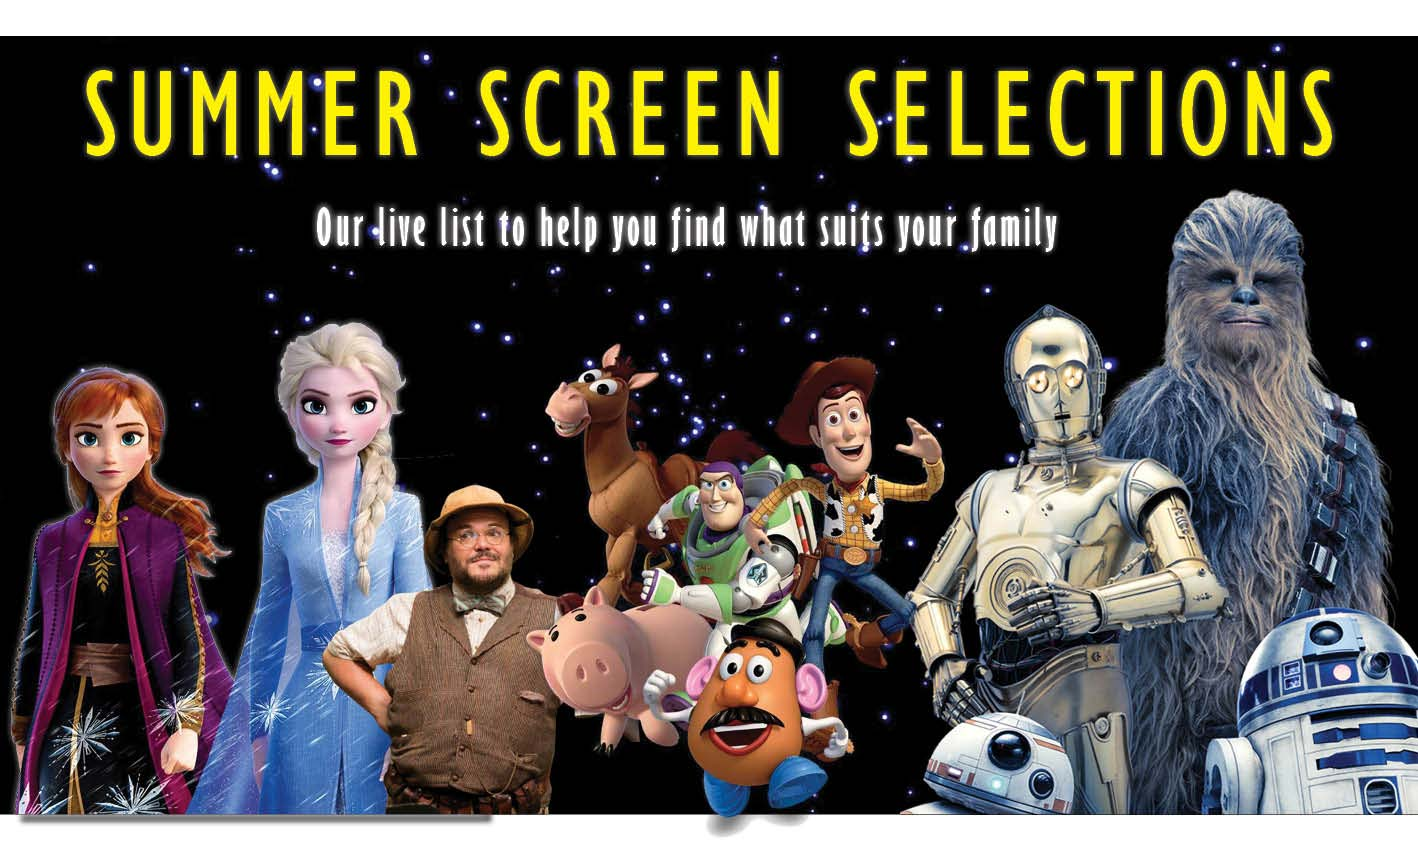 Summer screen selections banner image